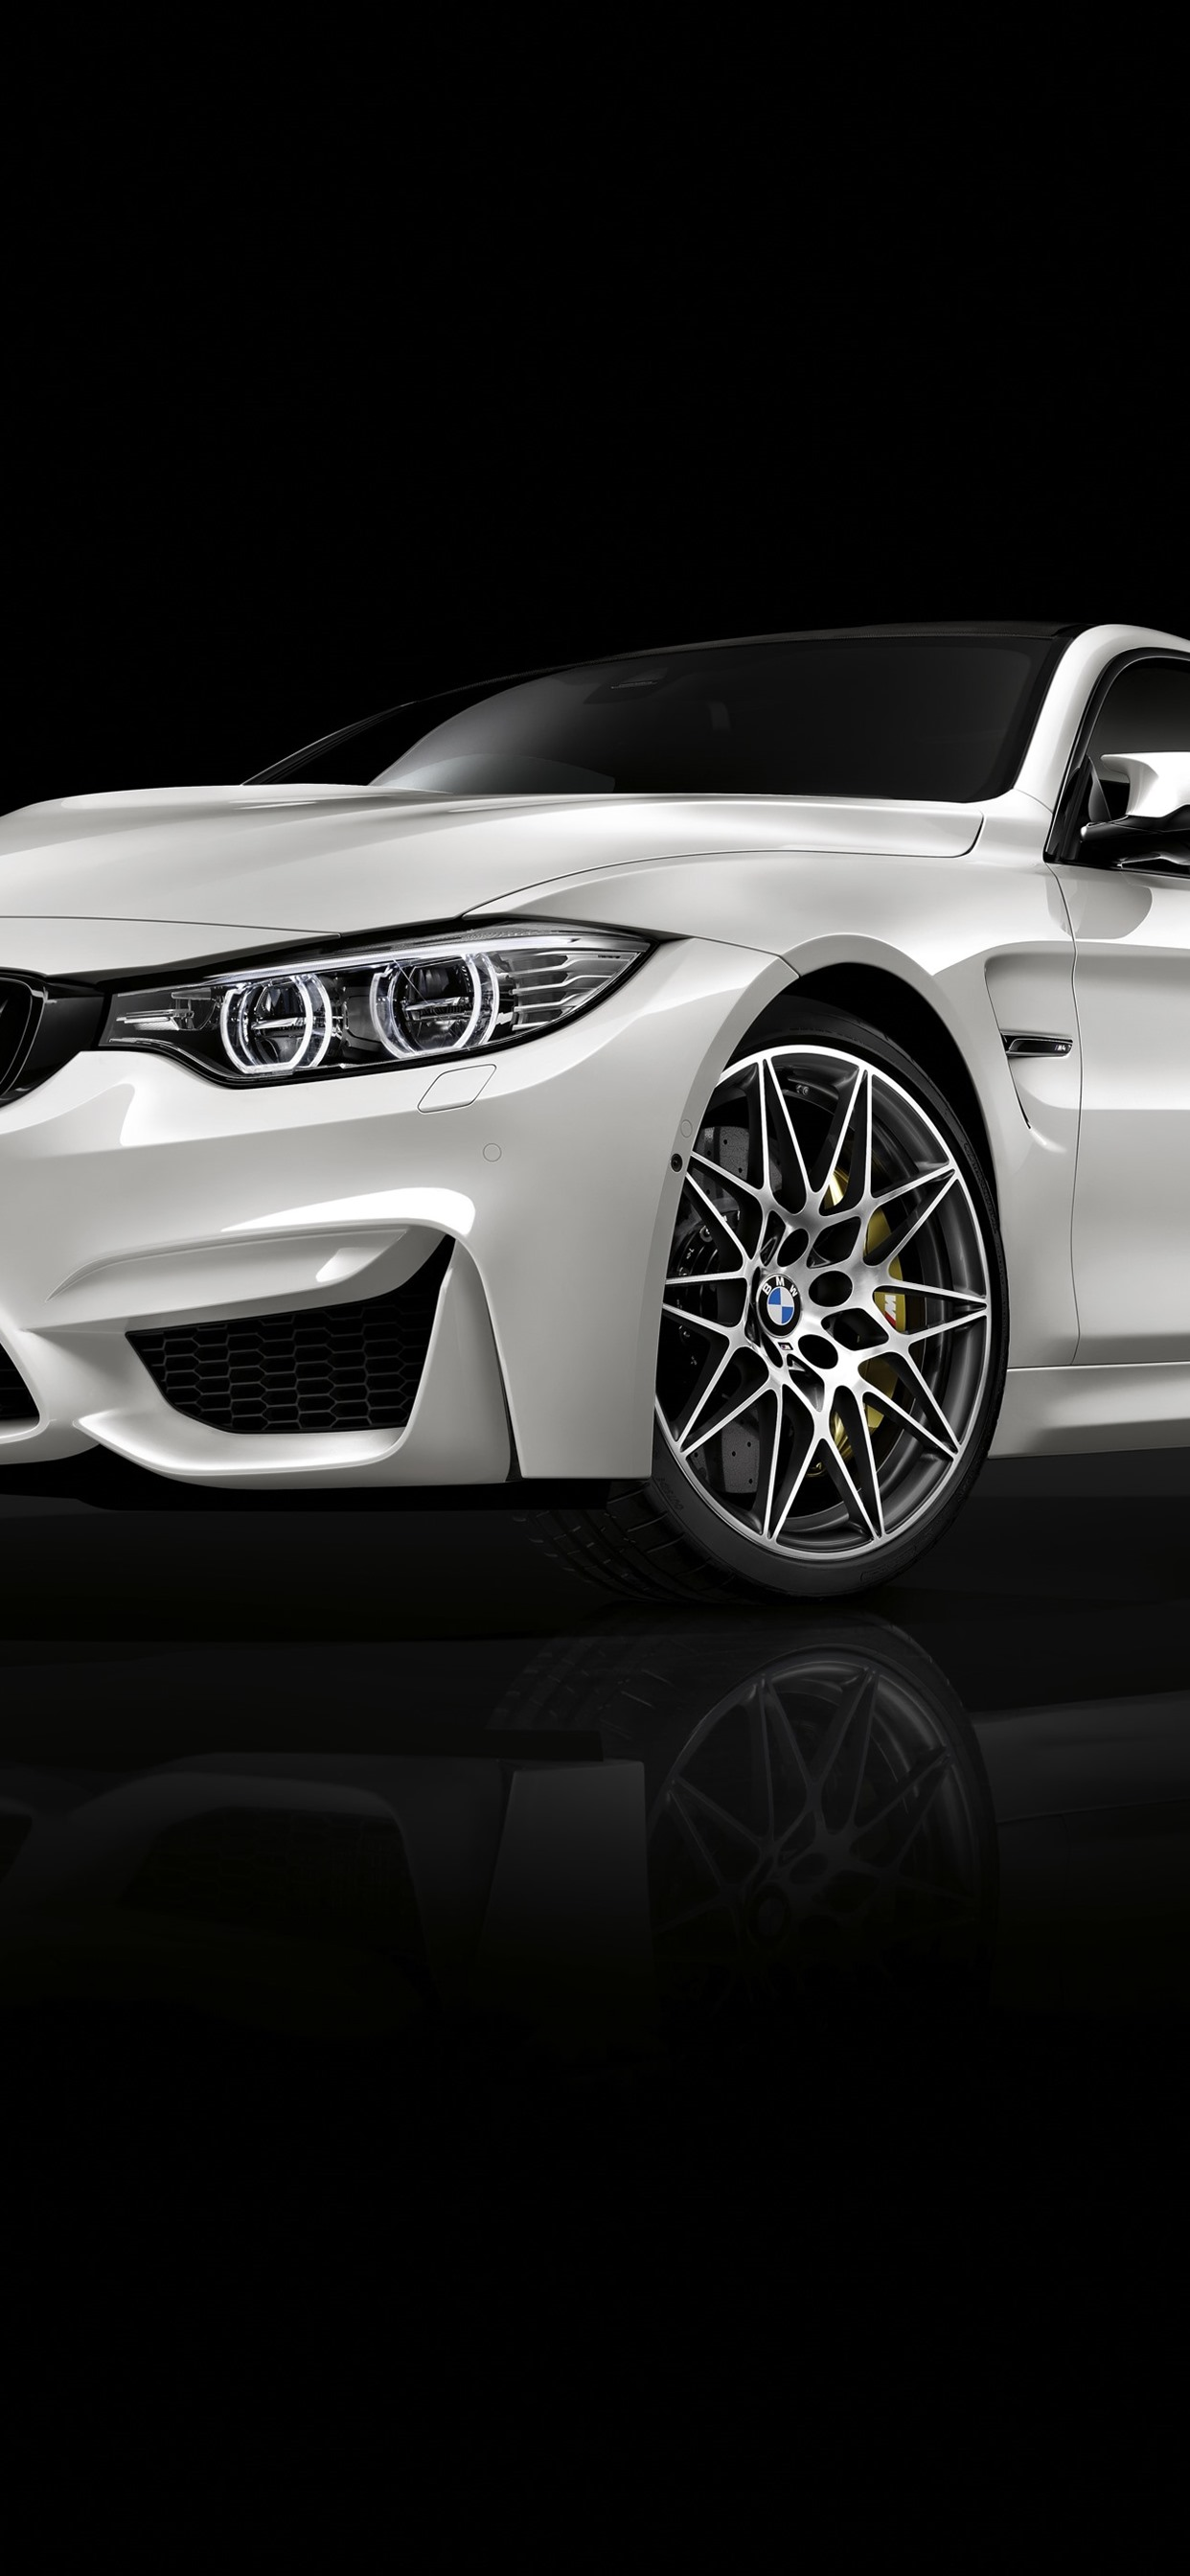 Bmw M4 White Car Front View Black Background 1242x2688 Iphone 11 Pro Xs Max Wallpaper Background Picture Image